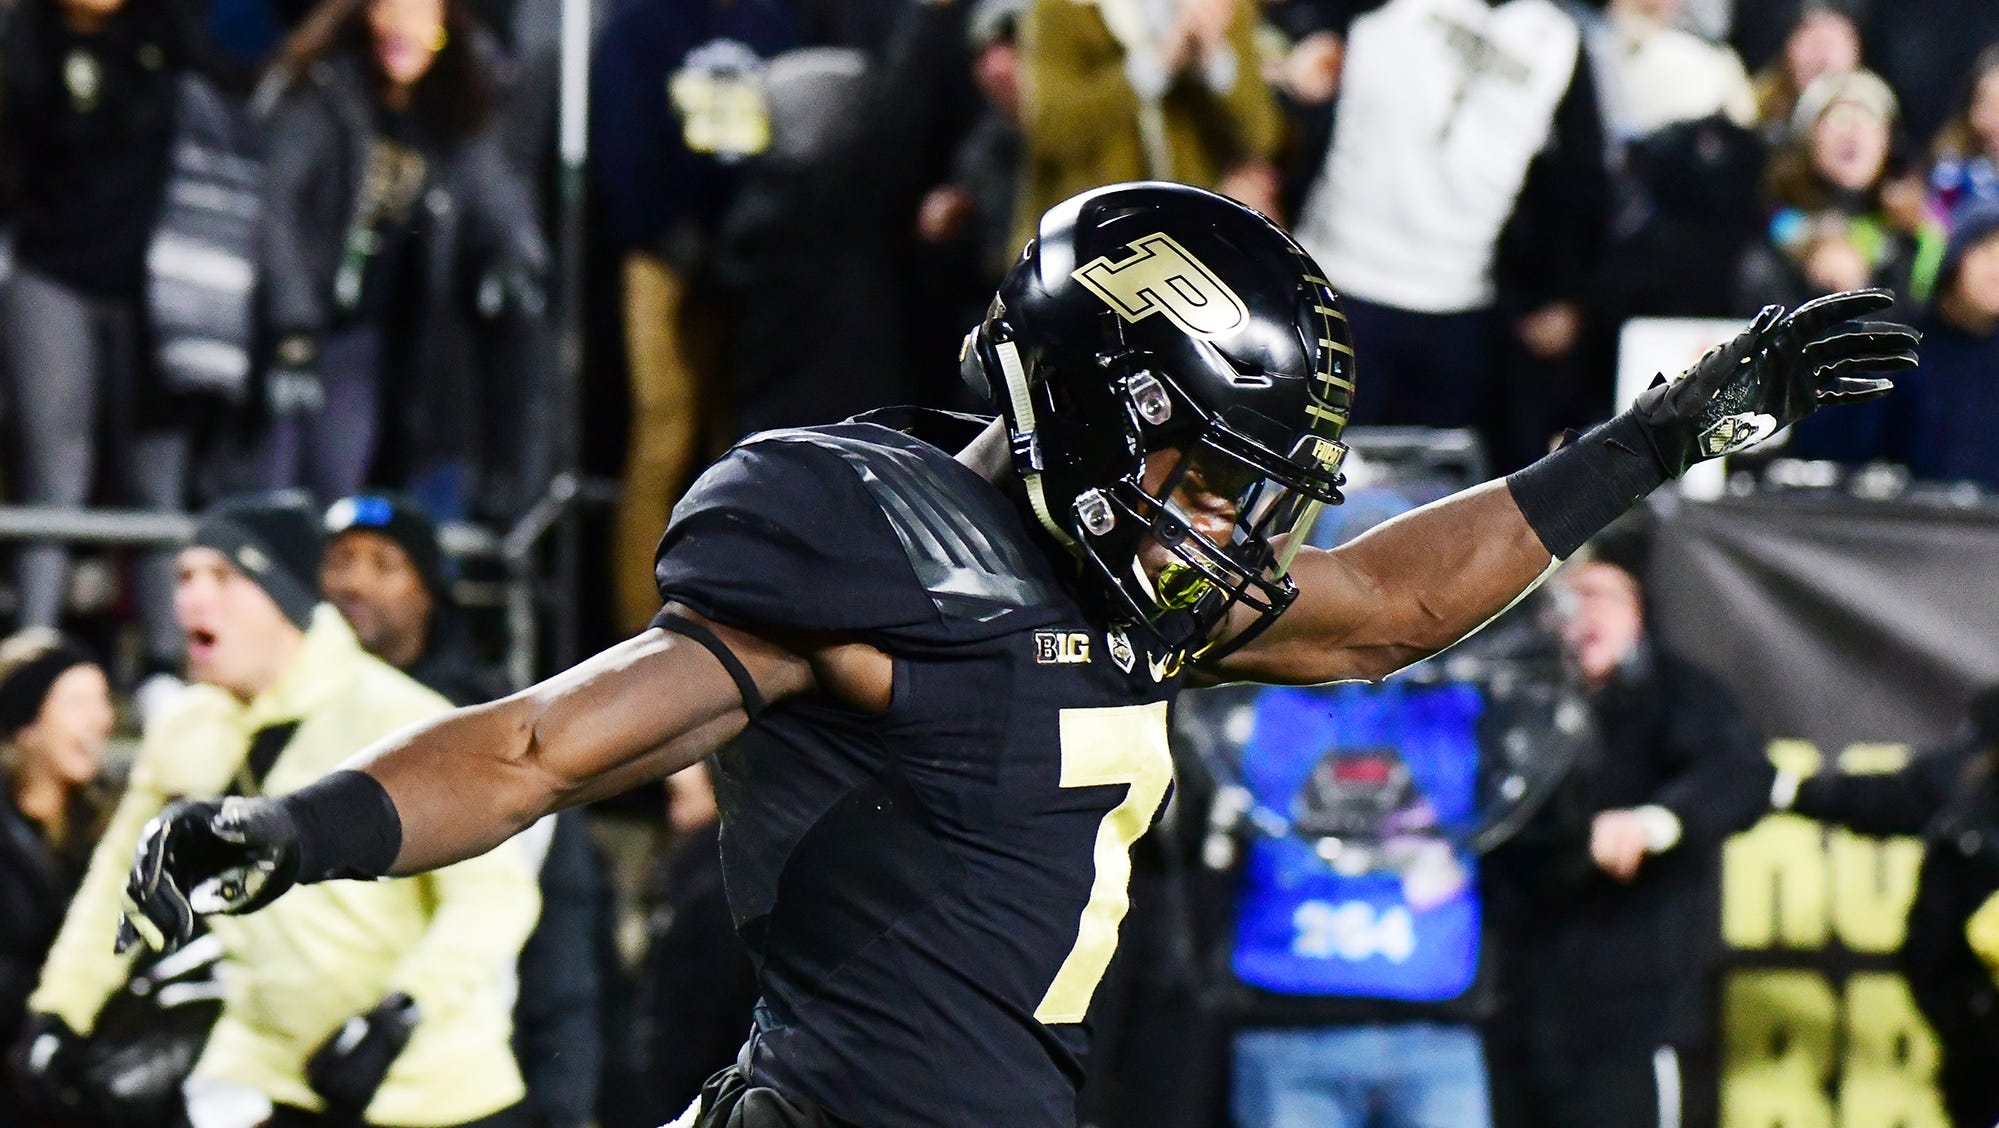 Isaac Zico of Purdue celebrates after his touchdown reception in the first half against Ohio State Saturday, October 20, 2018, at Ross-Ade Stadium.